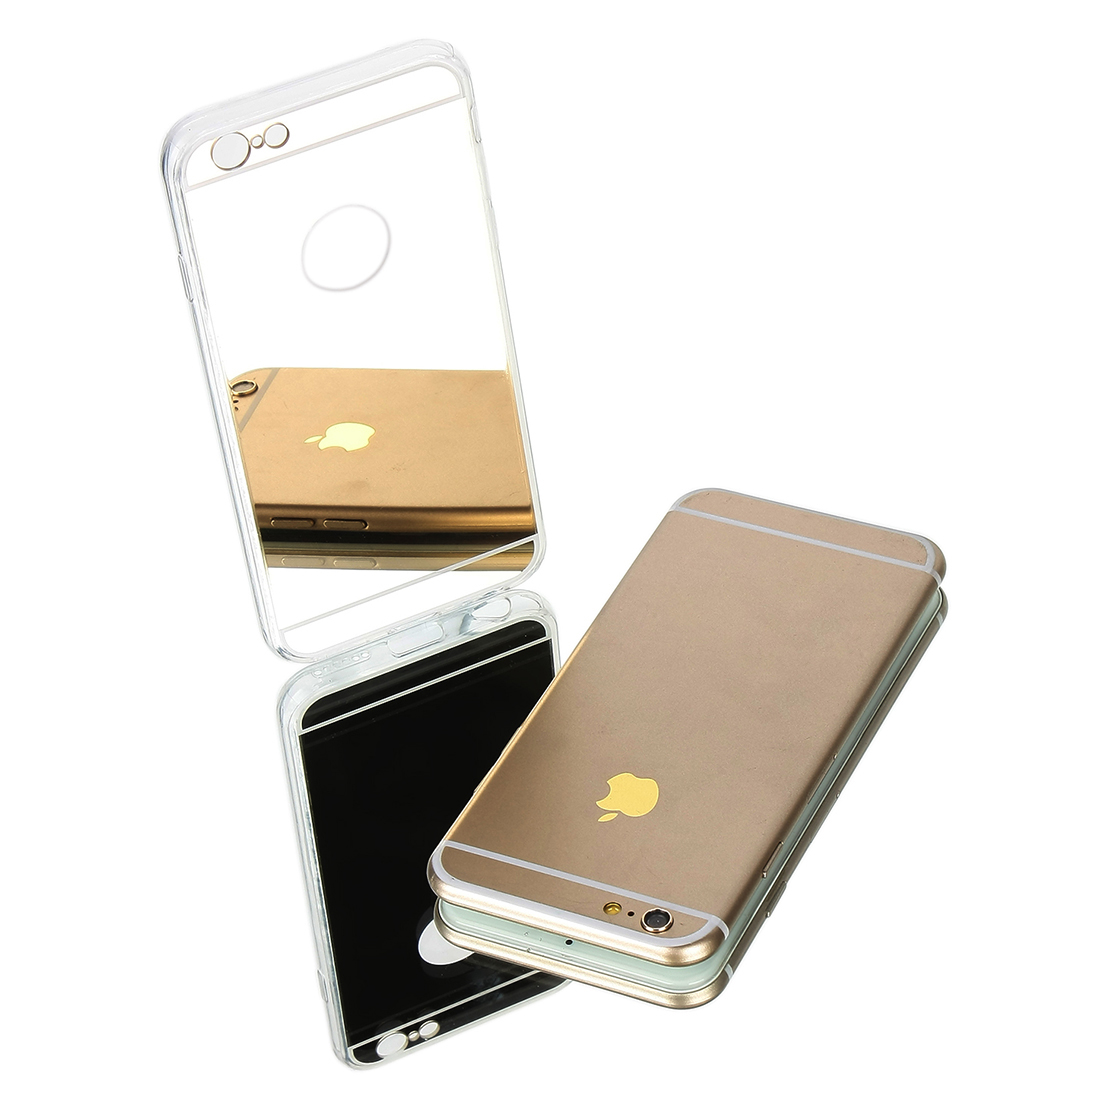 Protective Luxury Ultra-thin Mirror Transparent TPU Case Cover for iPhone 6